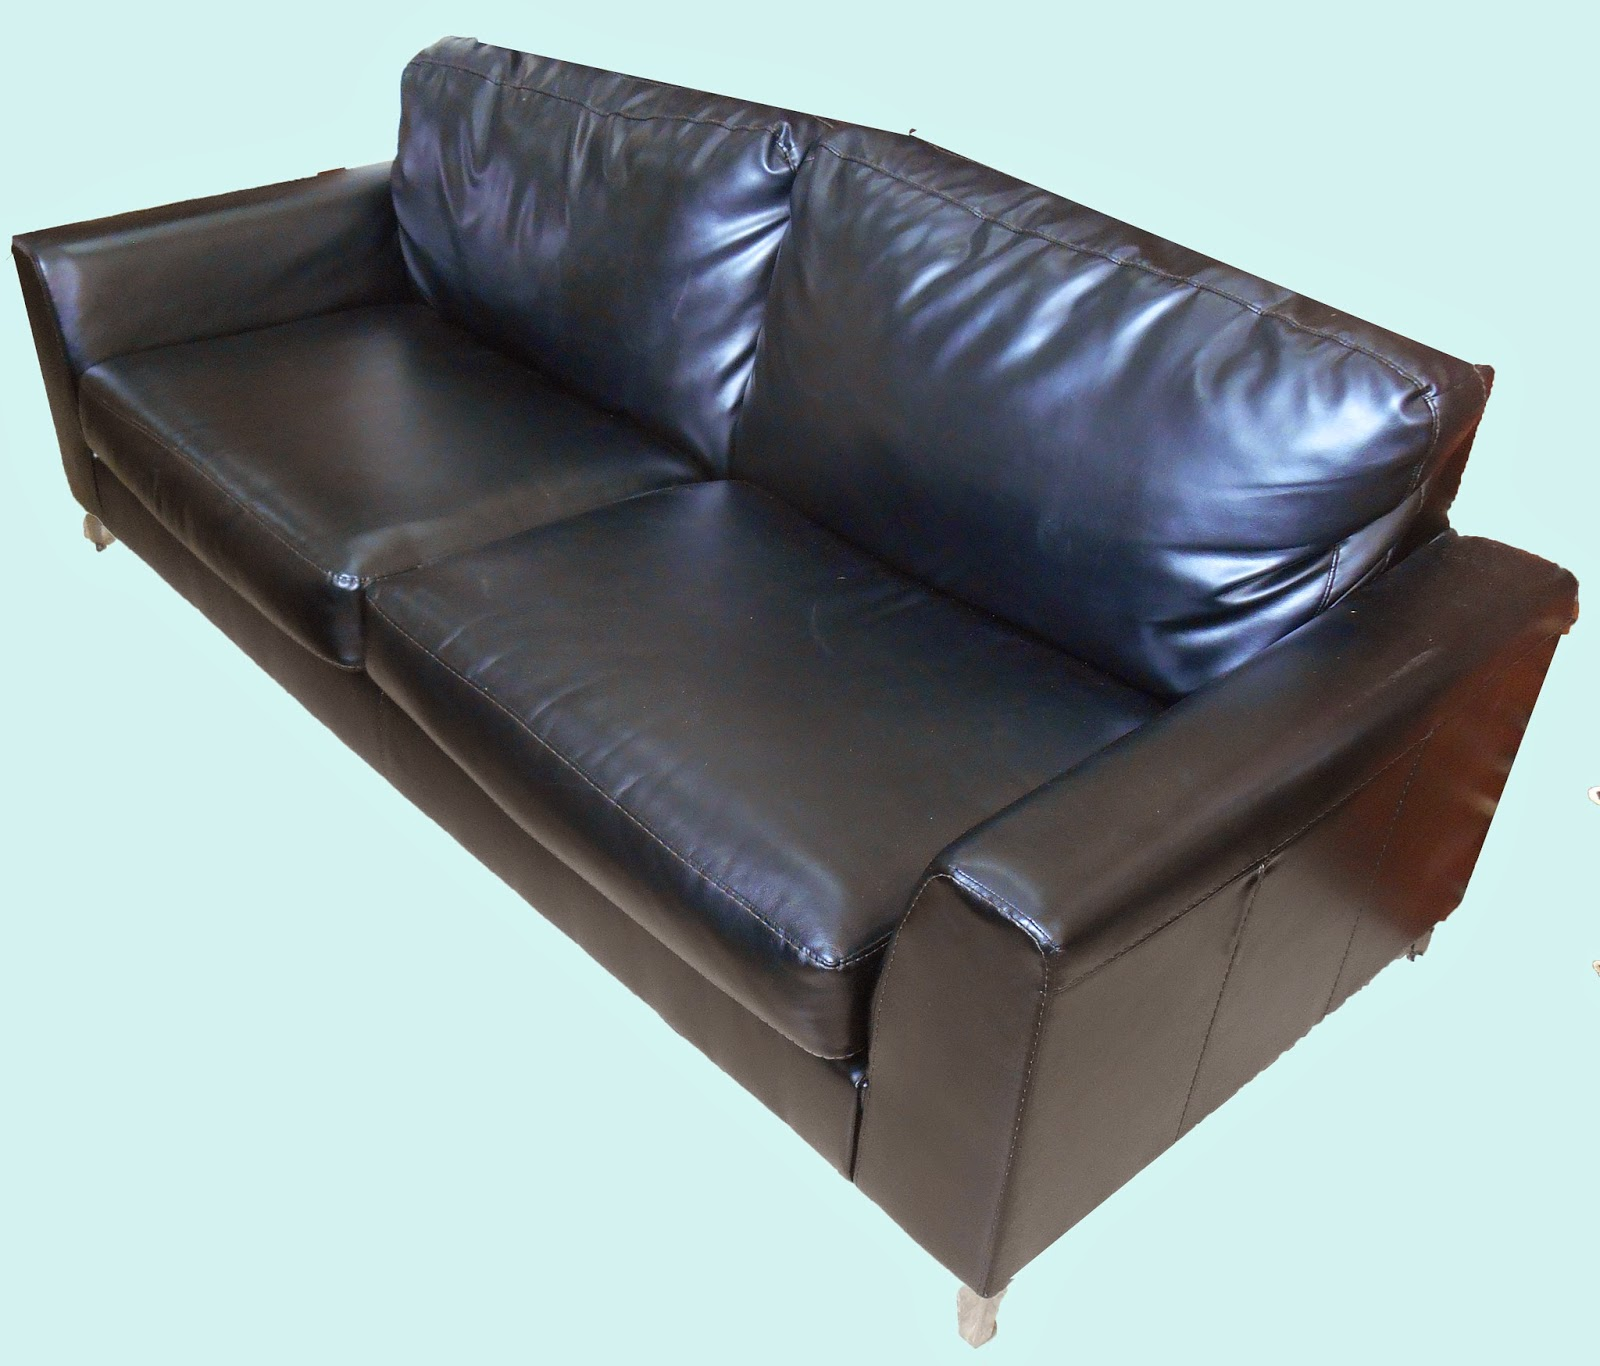 Uhuru Furniture Collectibles Blended Leather Sofa 250 Sold